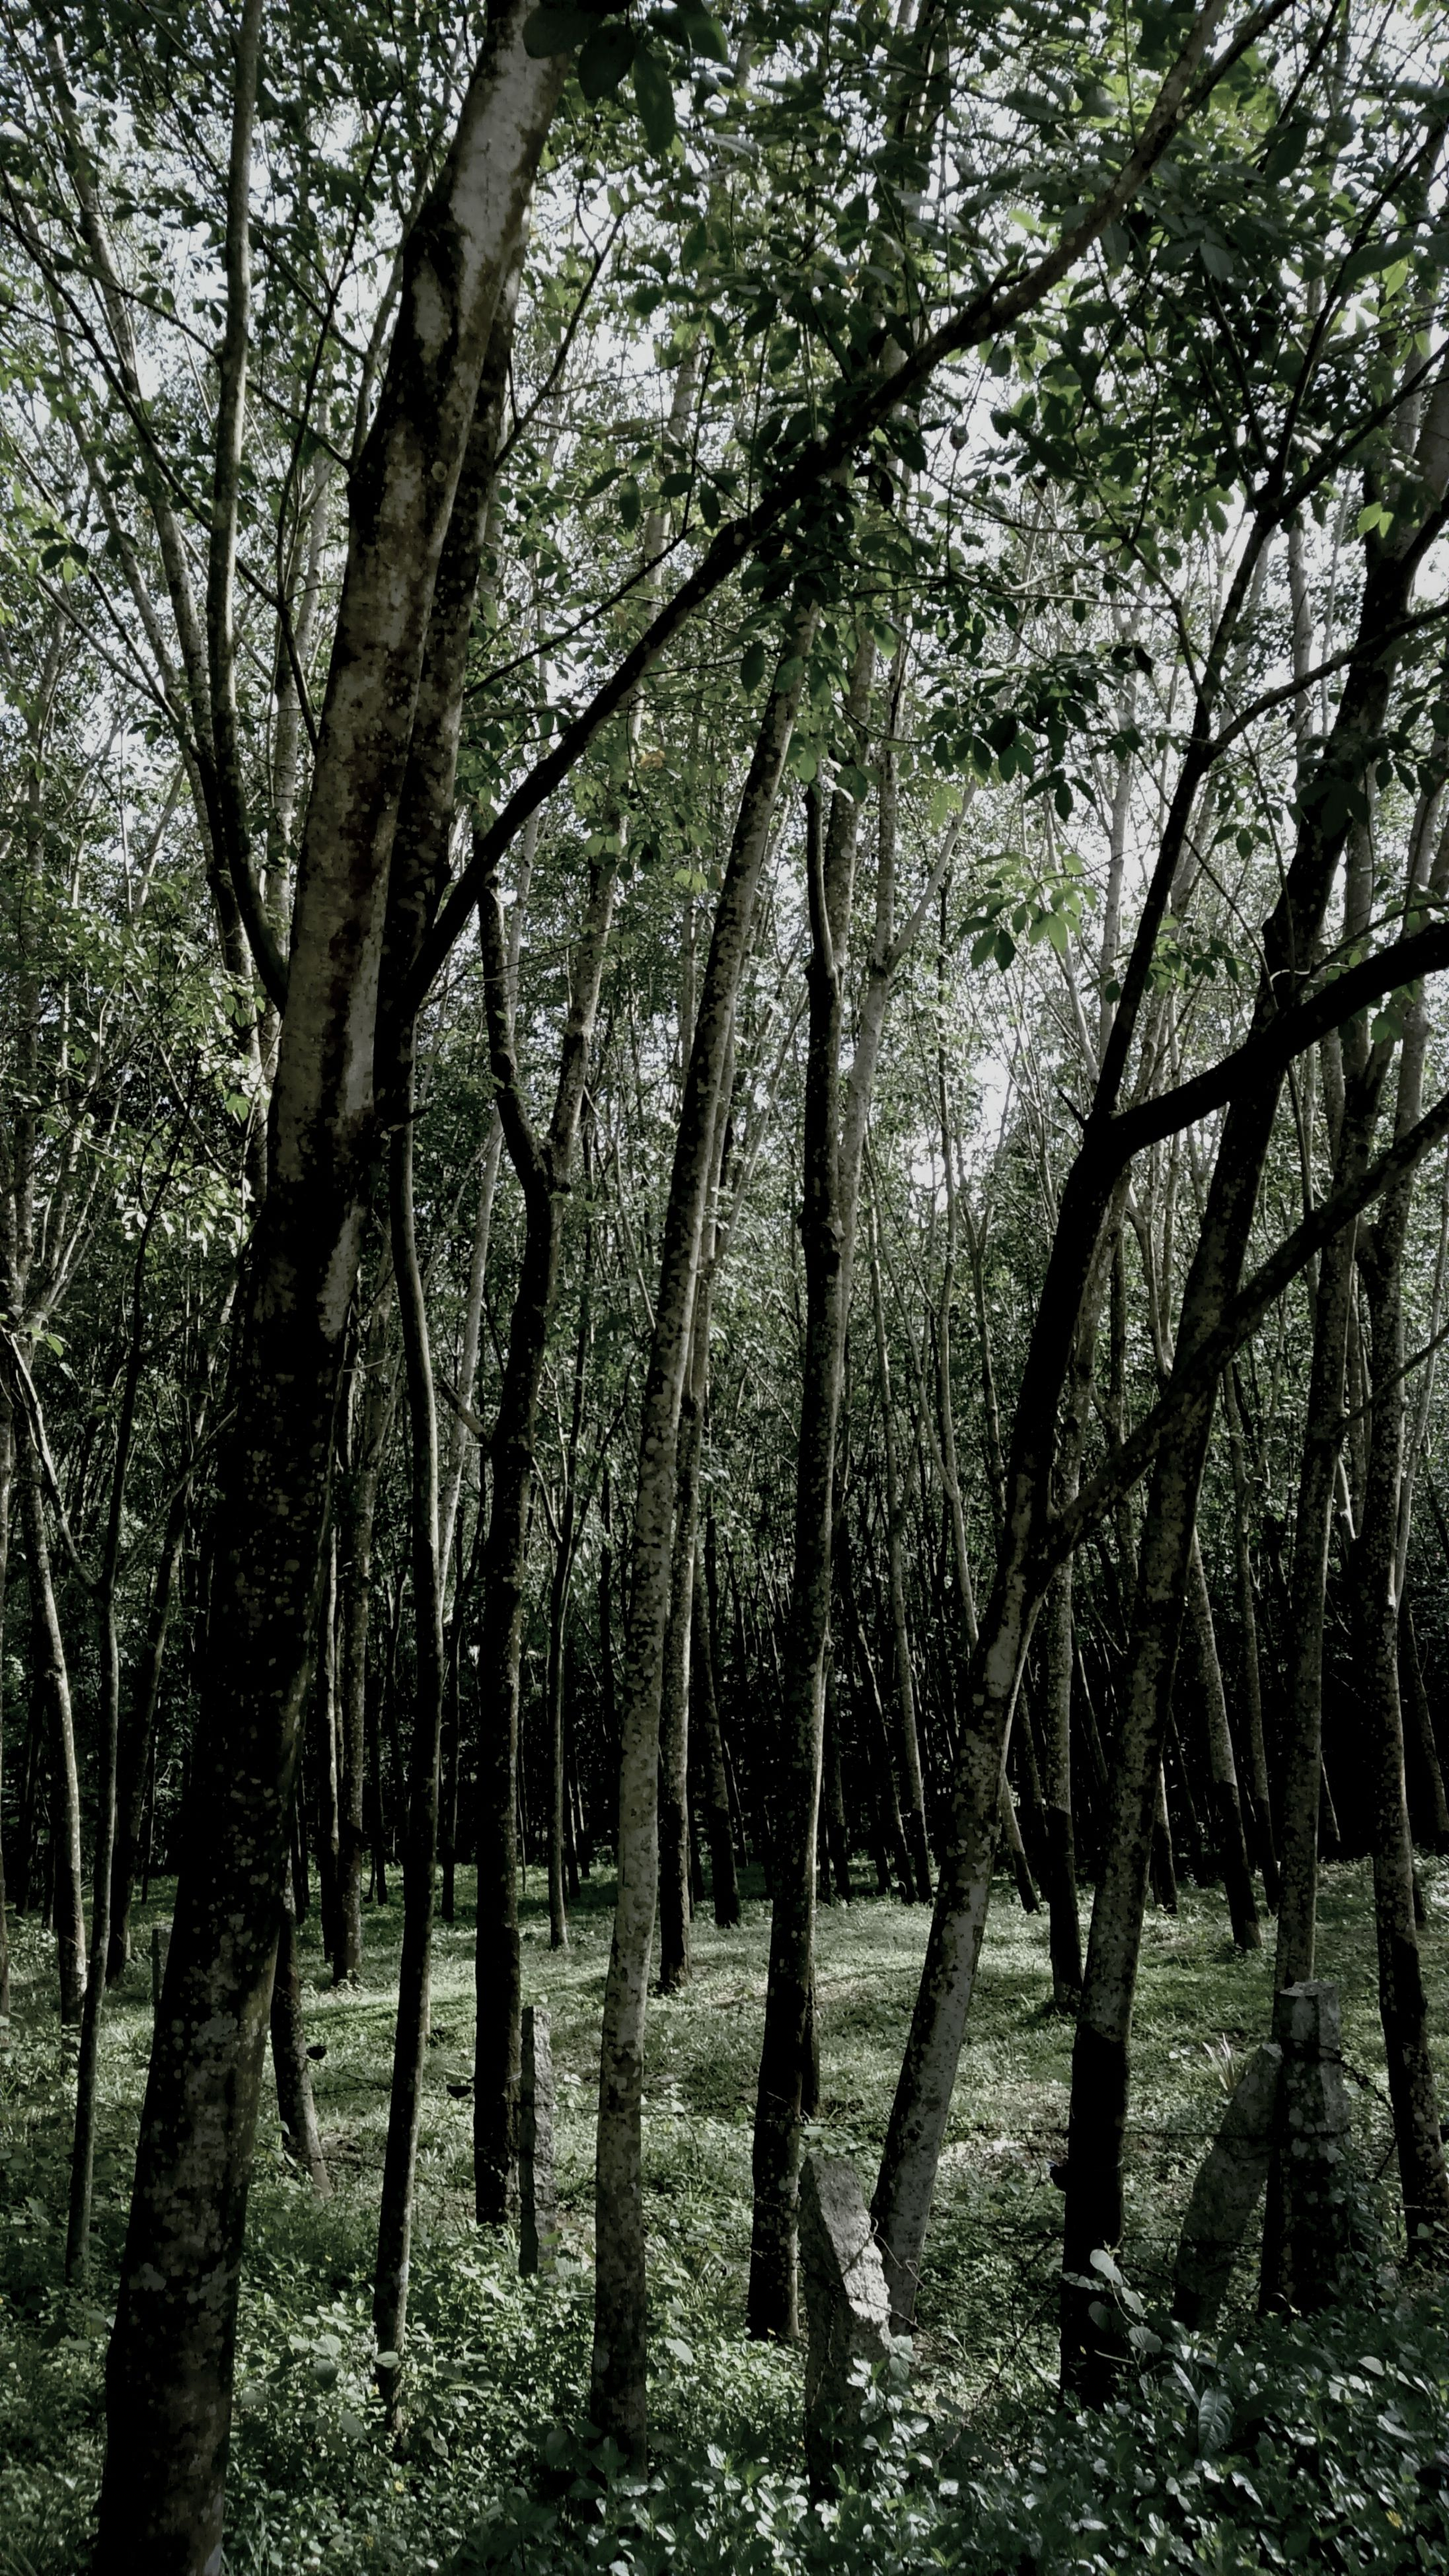 tree, tree trunk, tranquility, growth, nature, branch, forest, tranquil scene, beauty in nature, woodland, scenics, sunlight, day, landscape, non-urban scene, outdoors, low angle view, no people, sky, idyllic